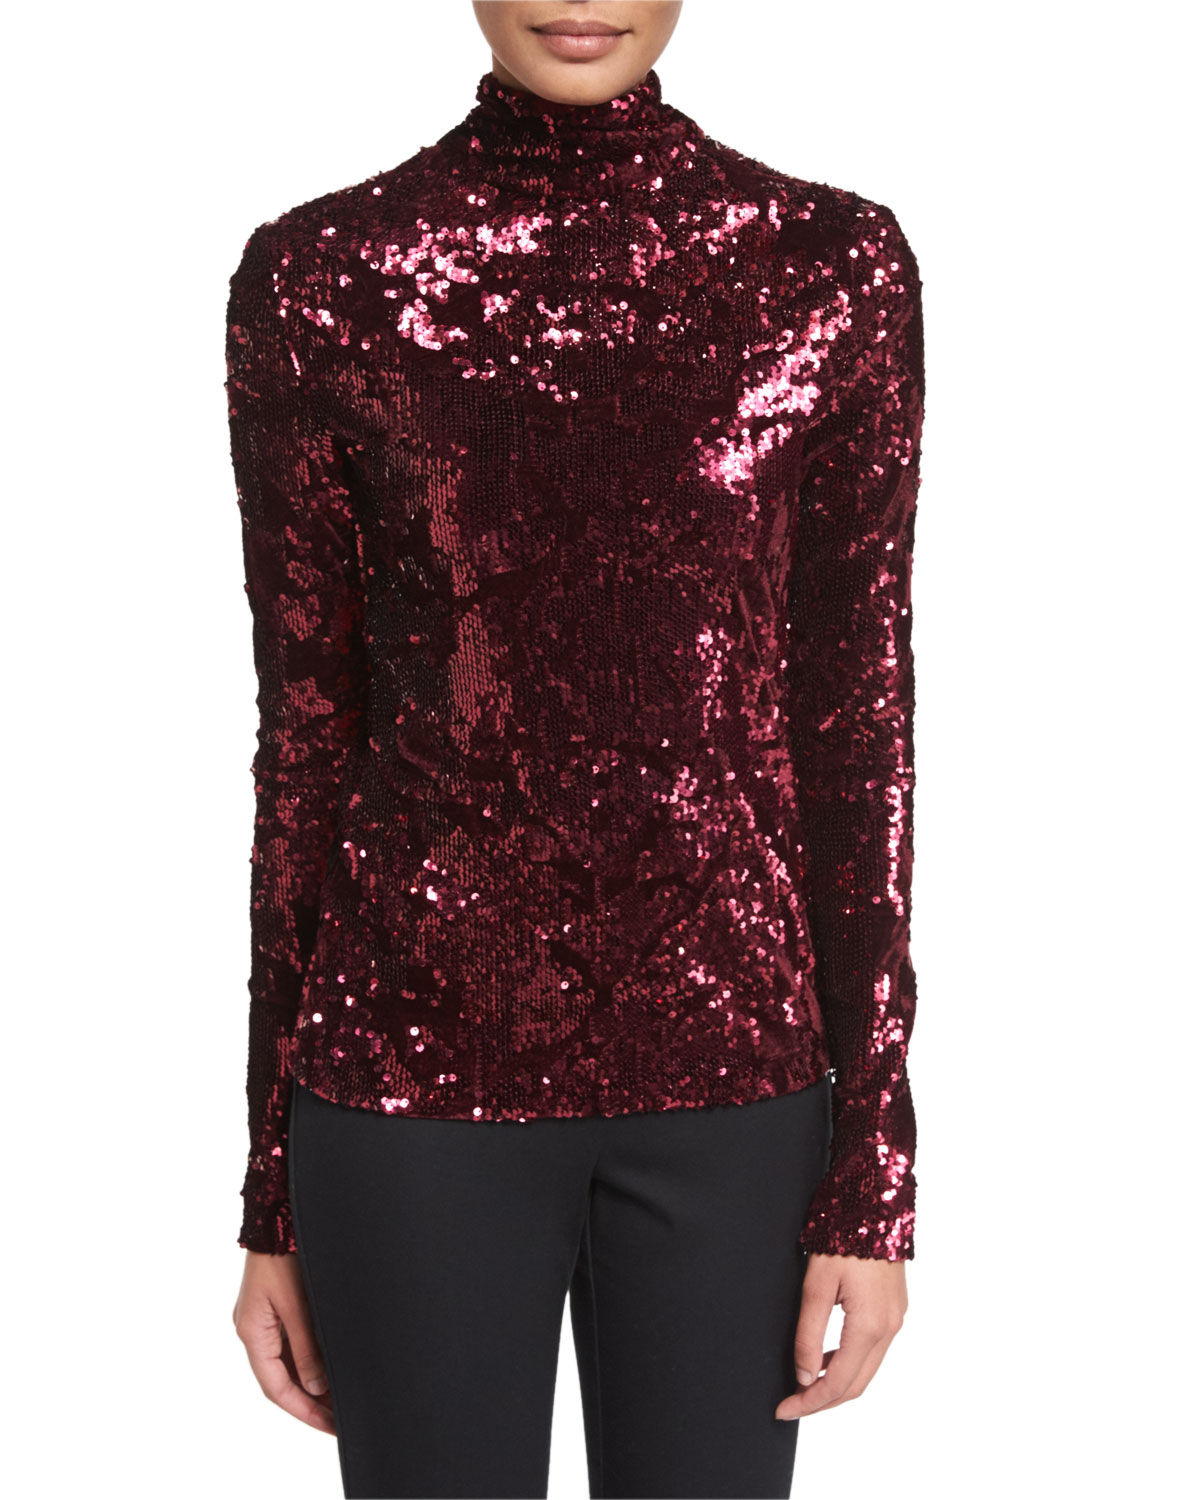 Ladina Sequined Turtleneck Top, Burgundy